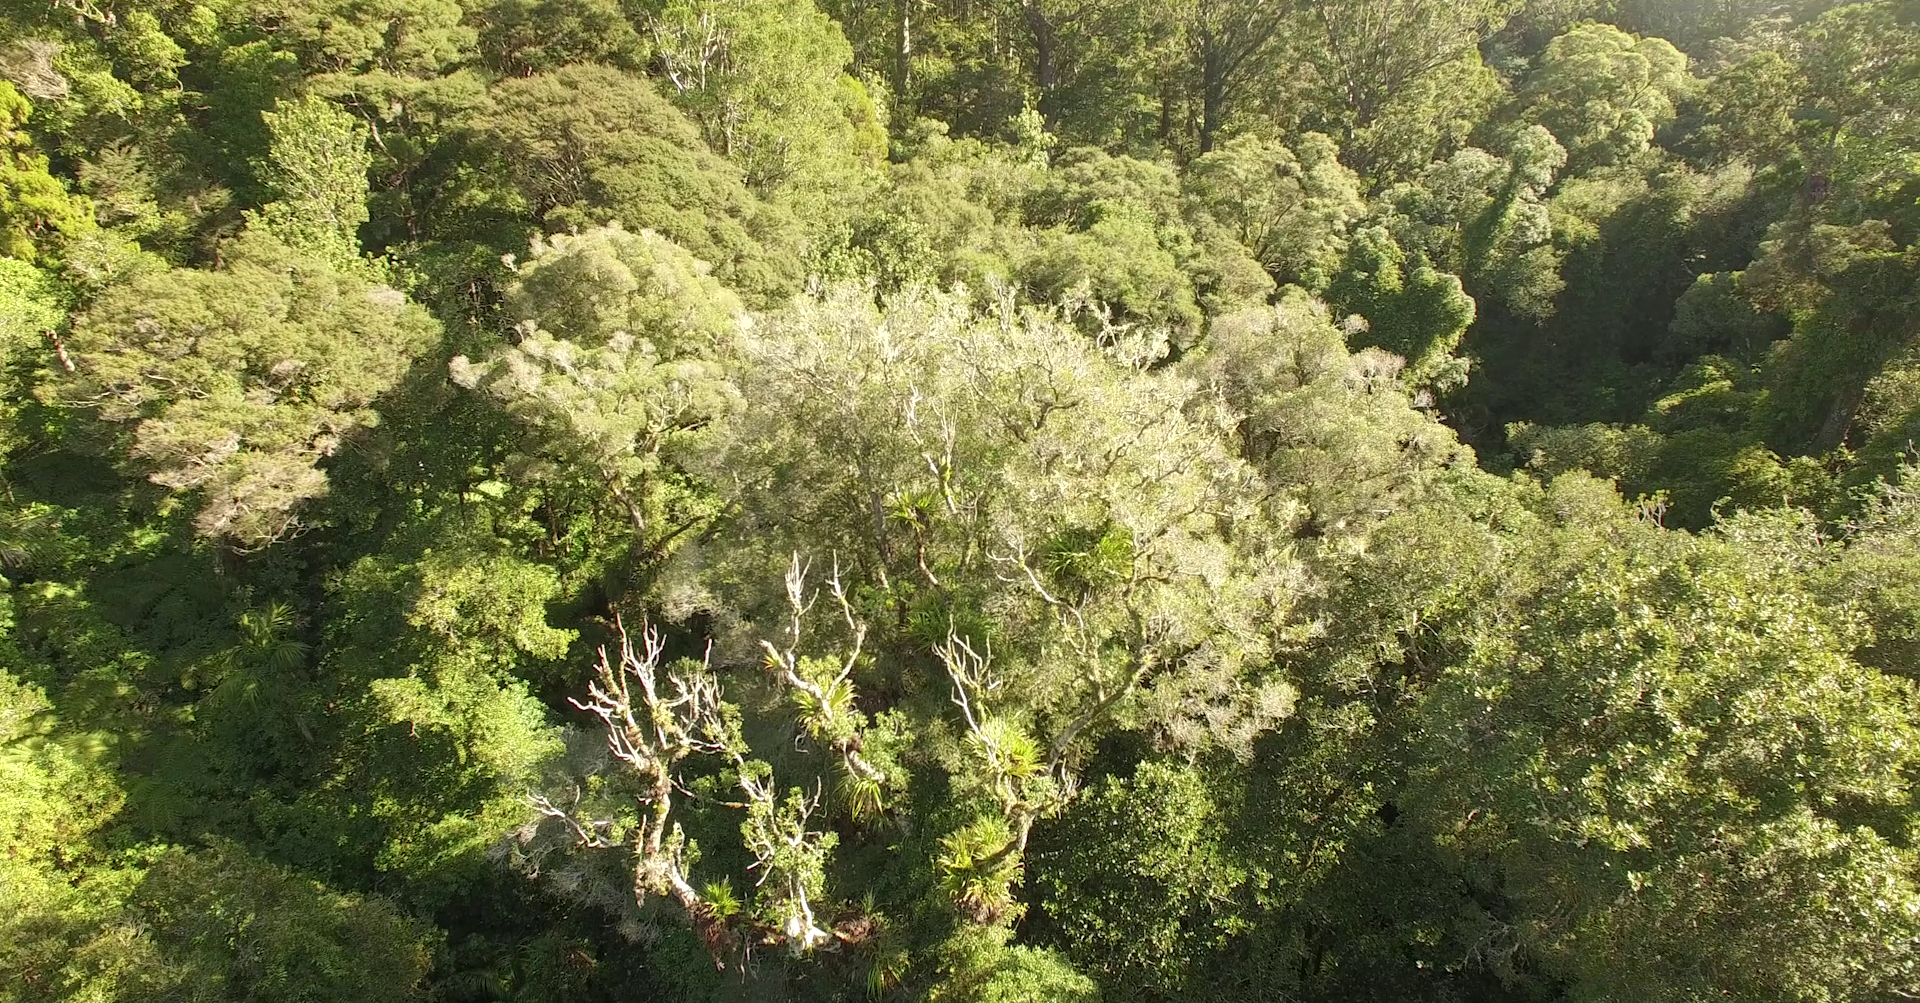 Native forest collapse feeds climate change